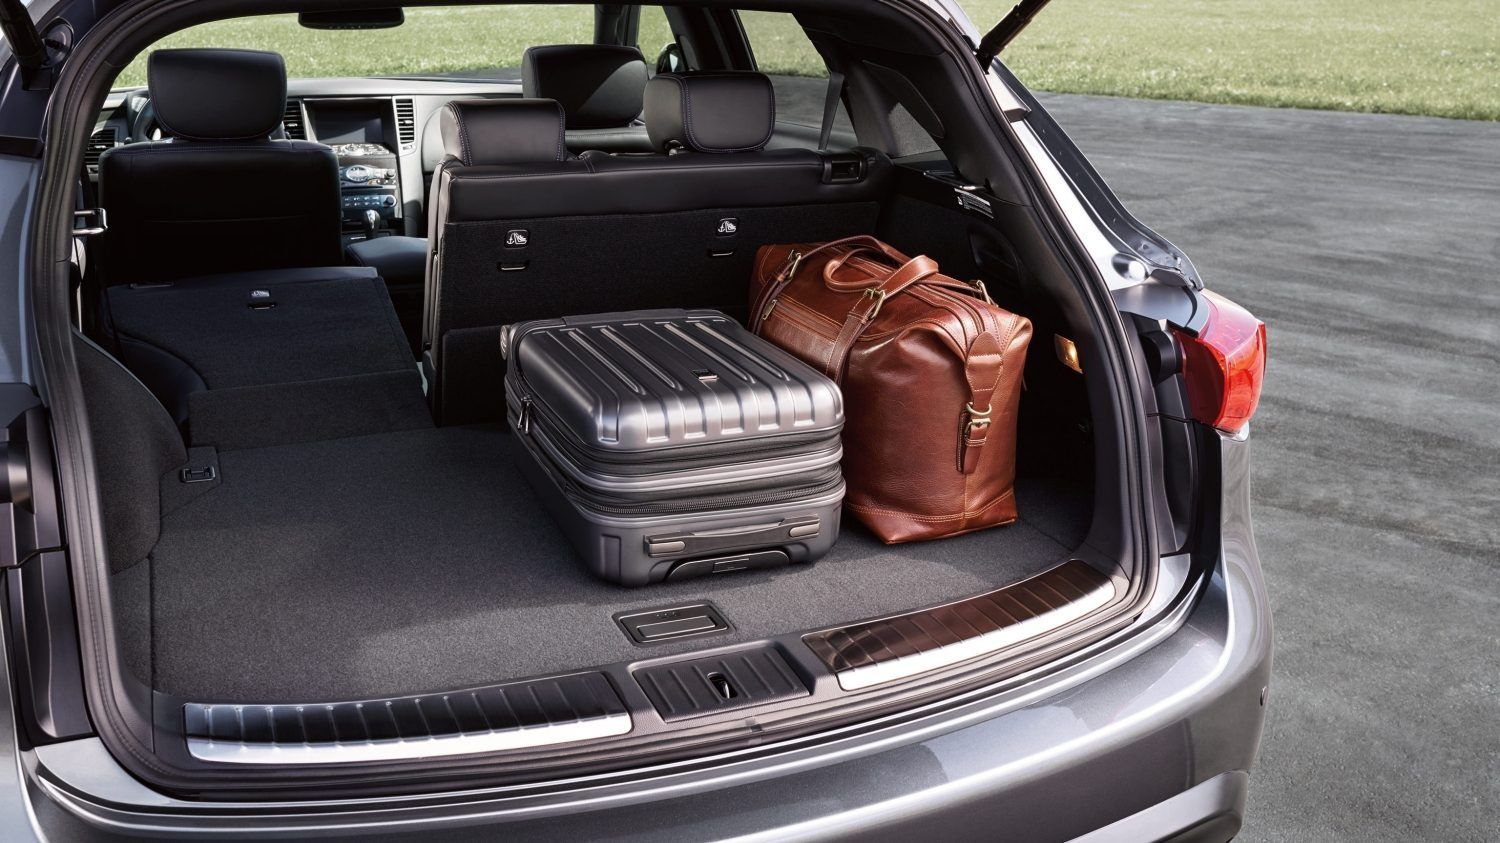 2017 Infiniti Qx70 Crossover Suv Rear Cargo Capacity With Images